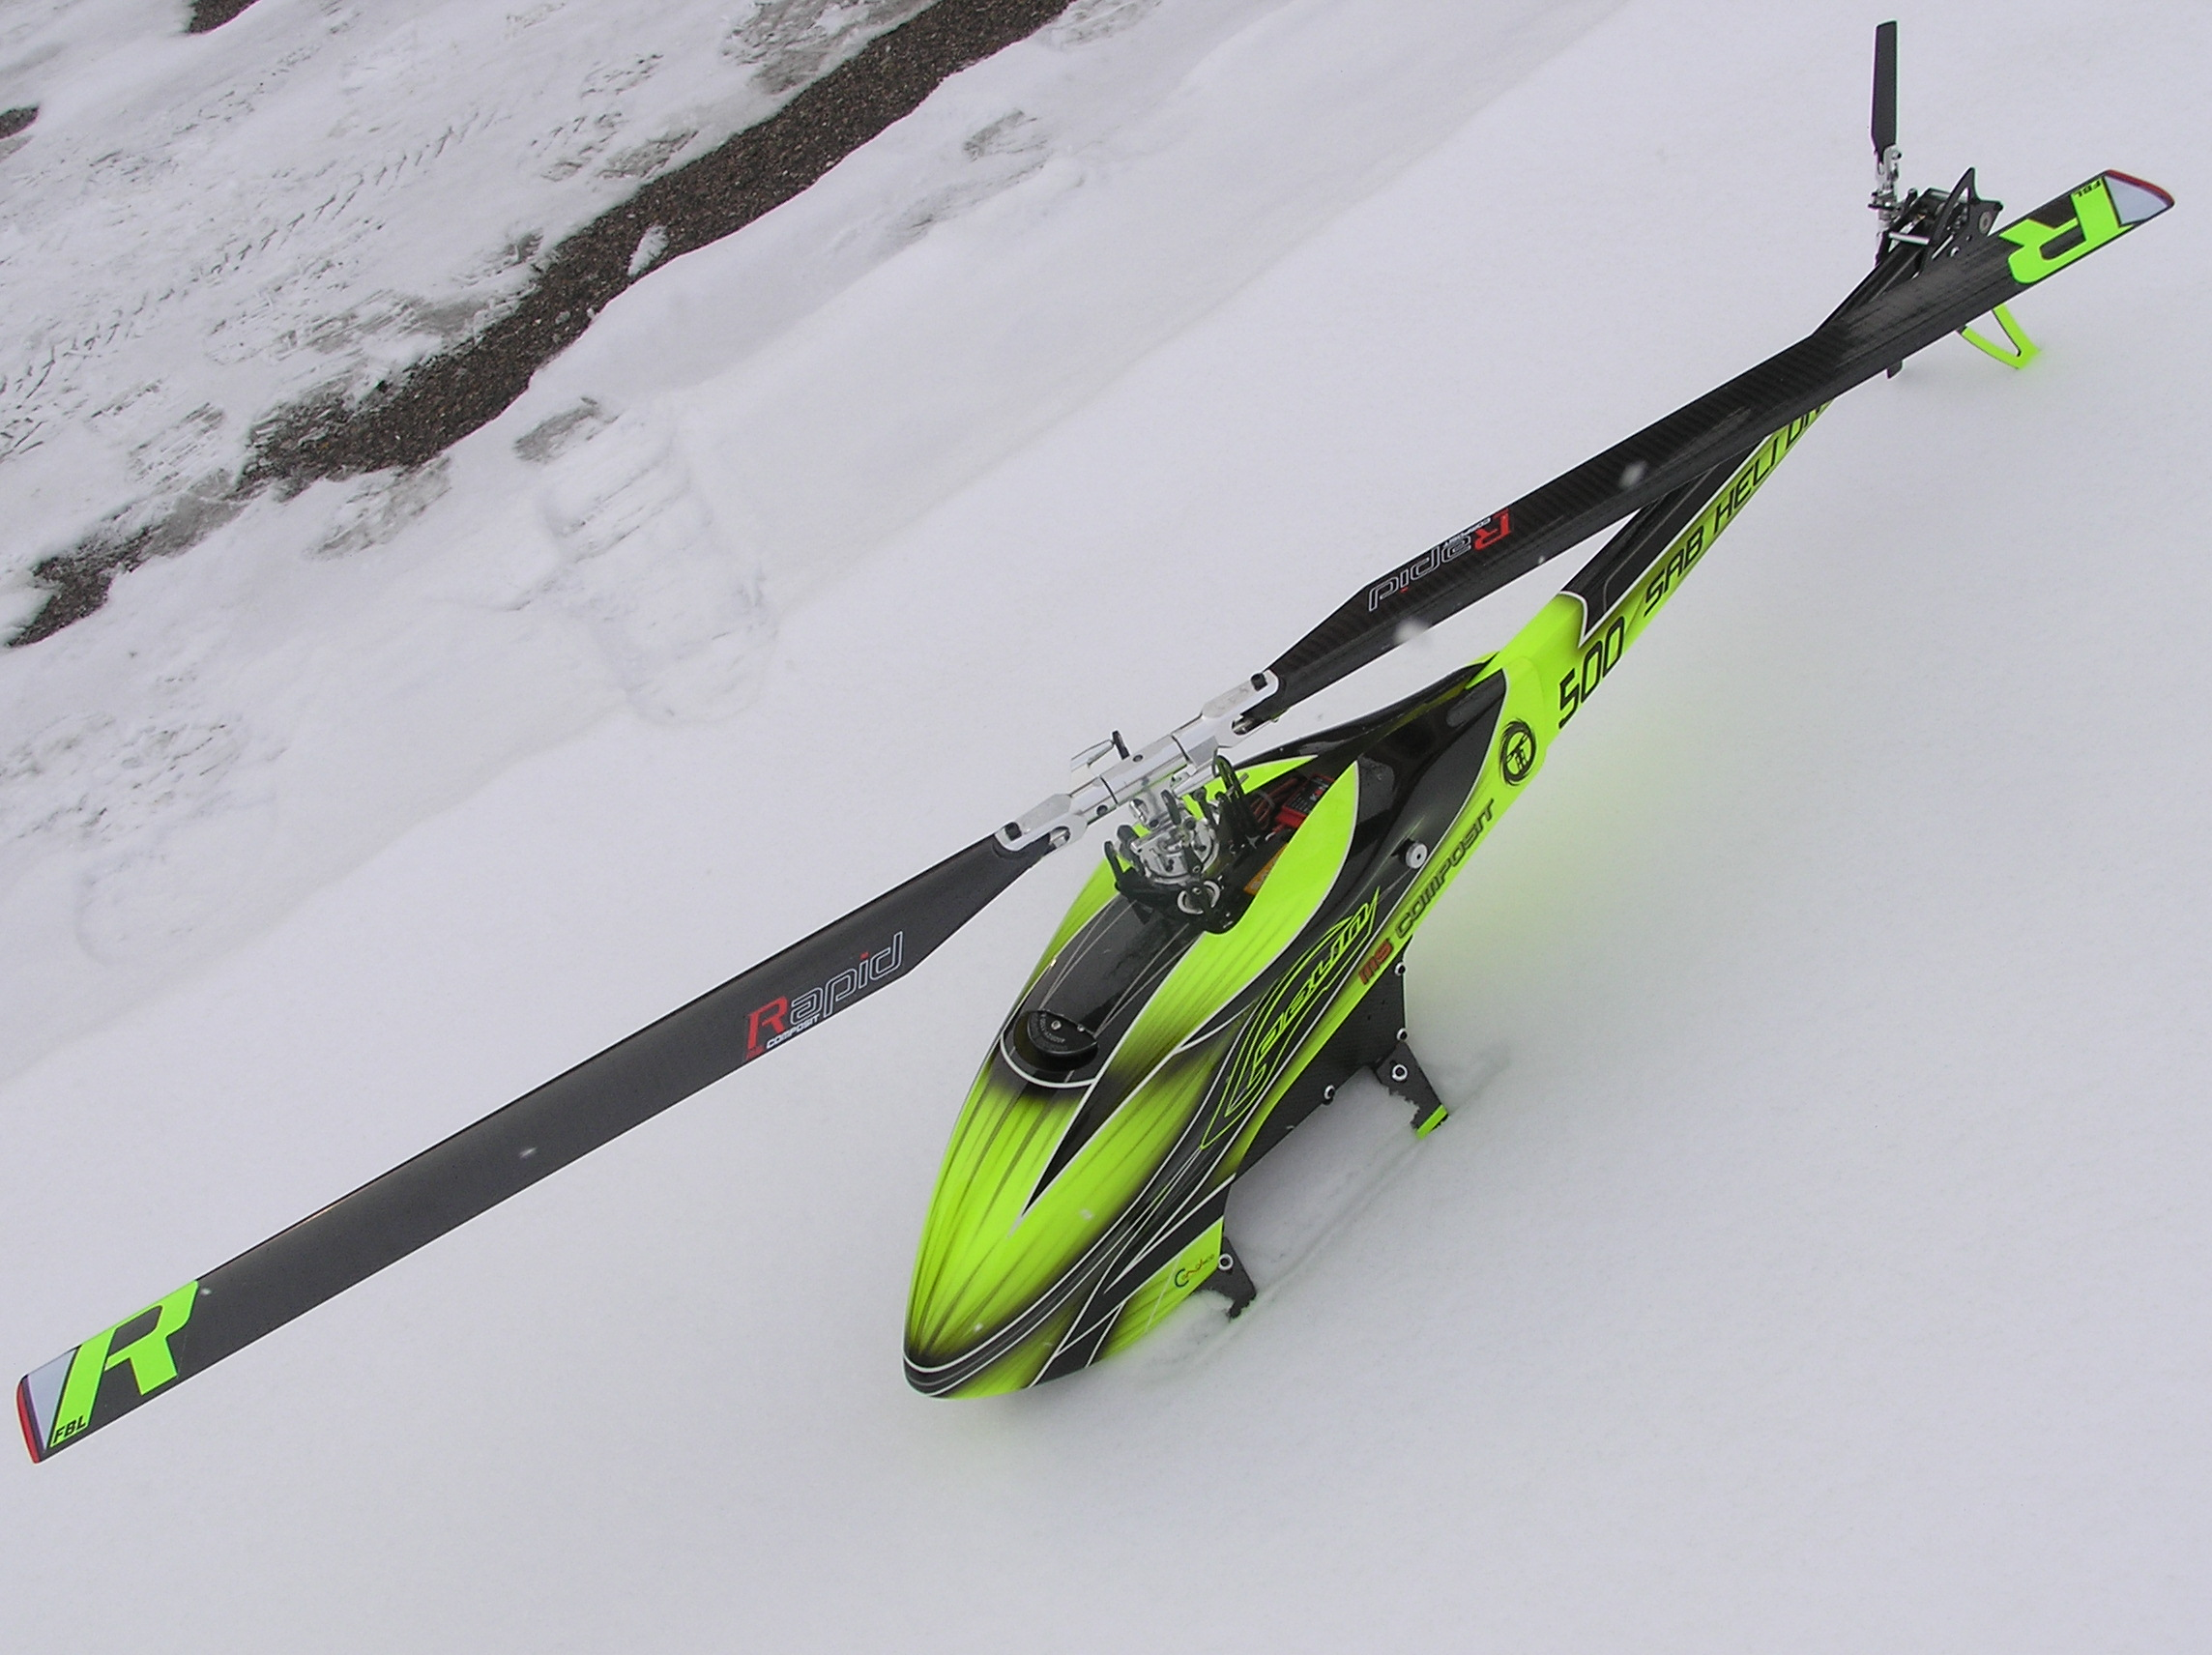 hd camera for rc planes with Goblin on Wltoys L959 2 4g 1 12 Scale Rc Cross Country Racing Car also 20140520 Lethal Drones Of The Future additionally Spy Drone Almost Causes Mid Air Collision With Jet Over Denver as well Rc Hobbies as well Goblin.